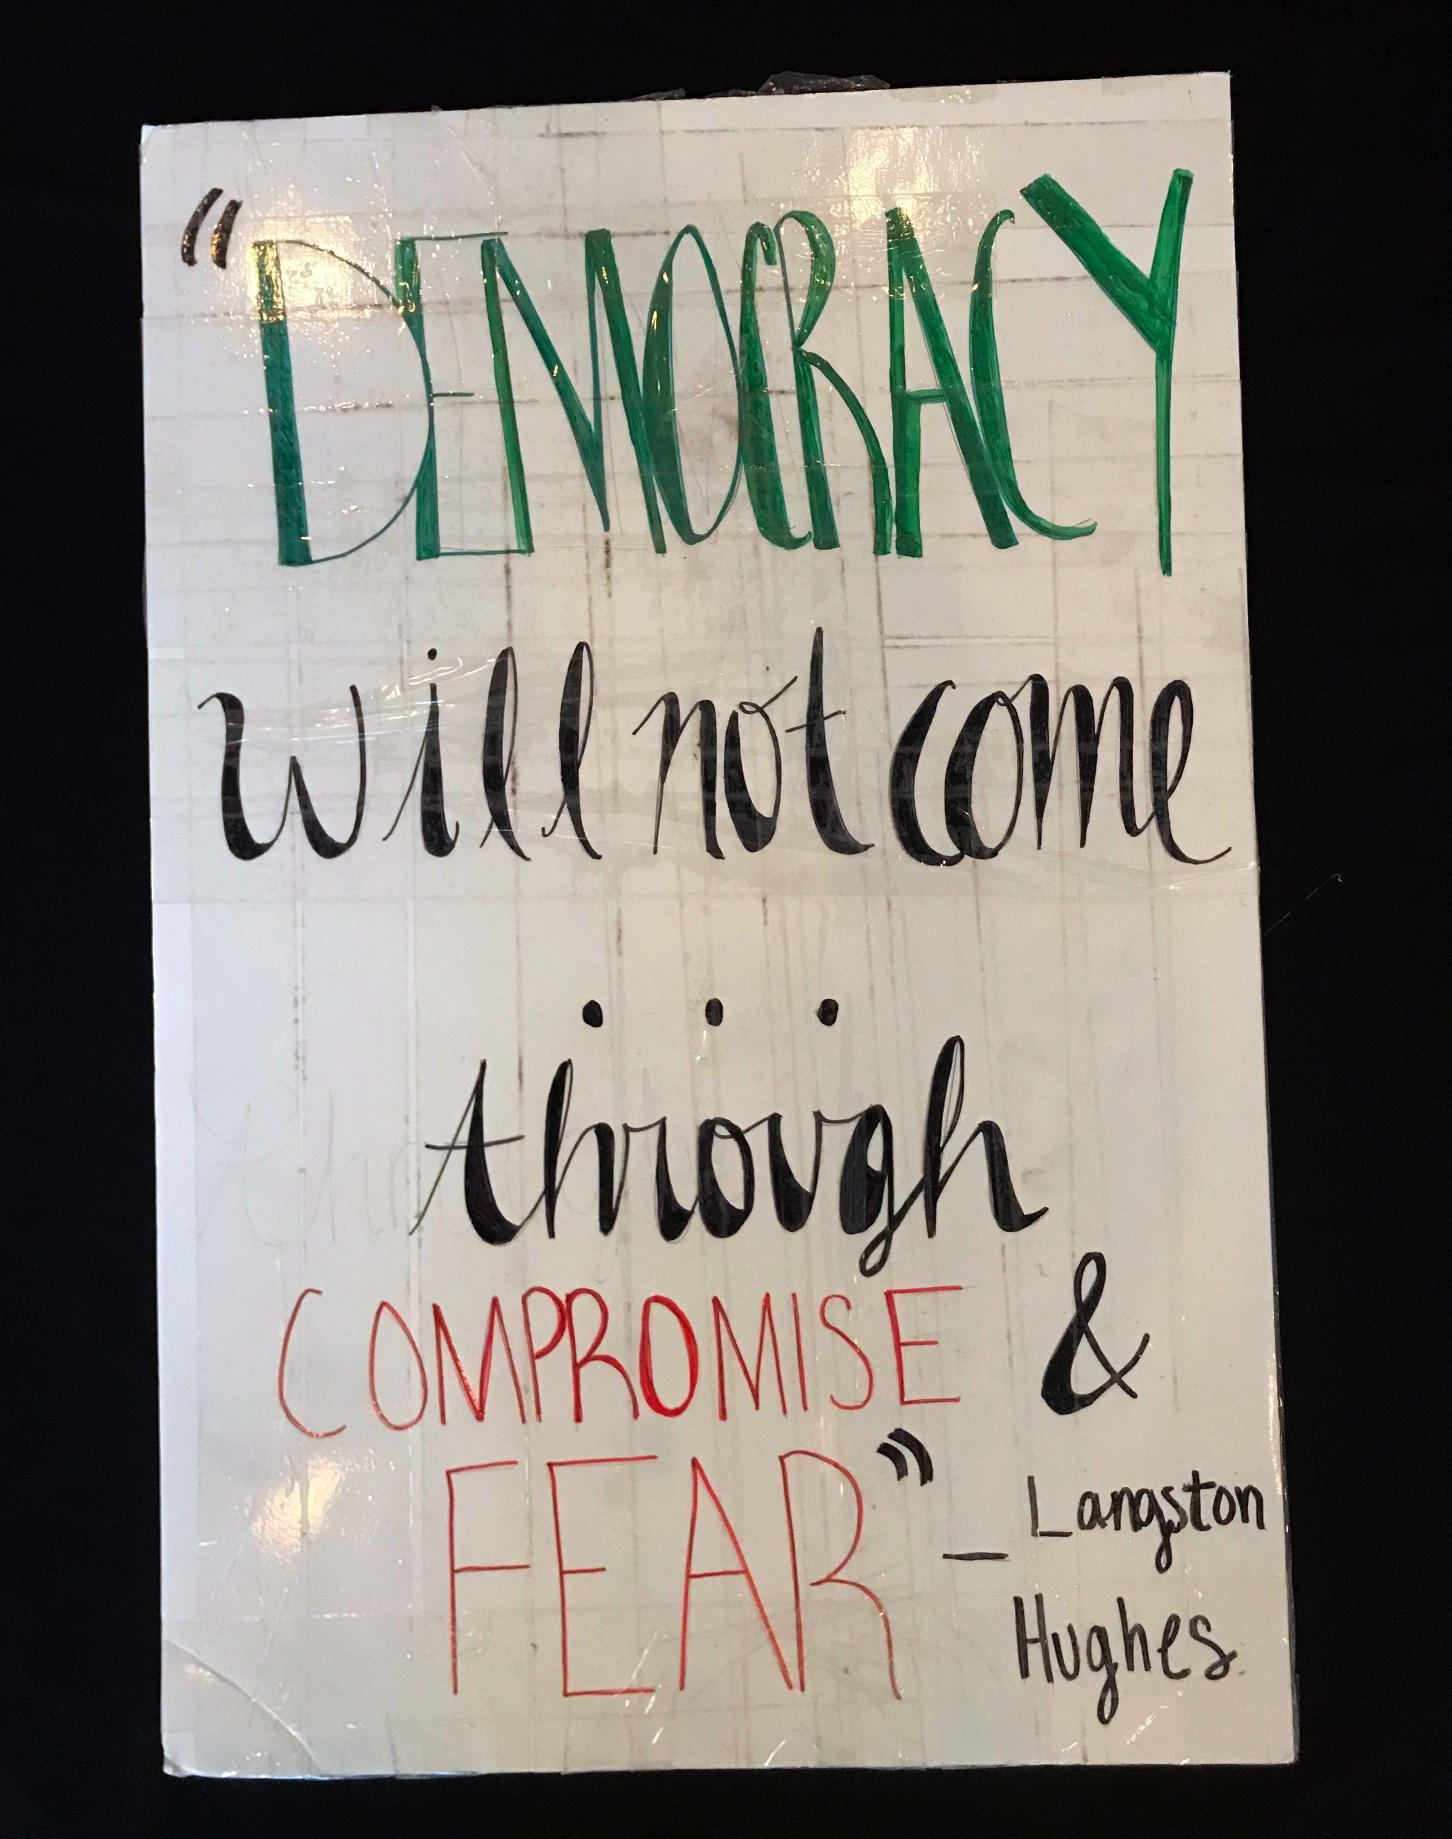 "Charlotte March for Our Lives, 2018. Sign reads: ""'Democracy will not come through compromise and fear.' - Langston Hughes"""